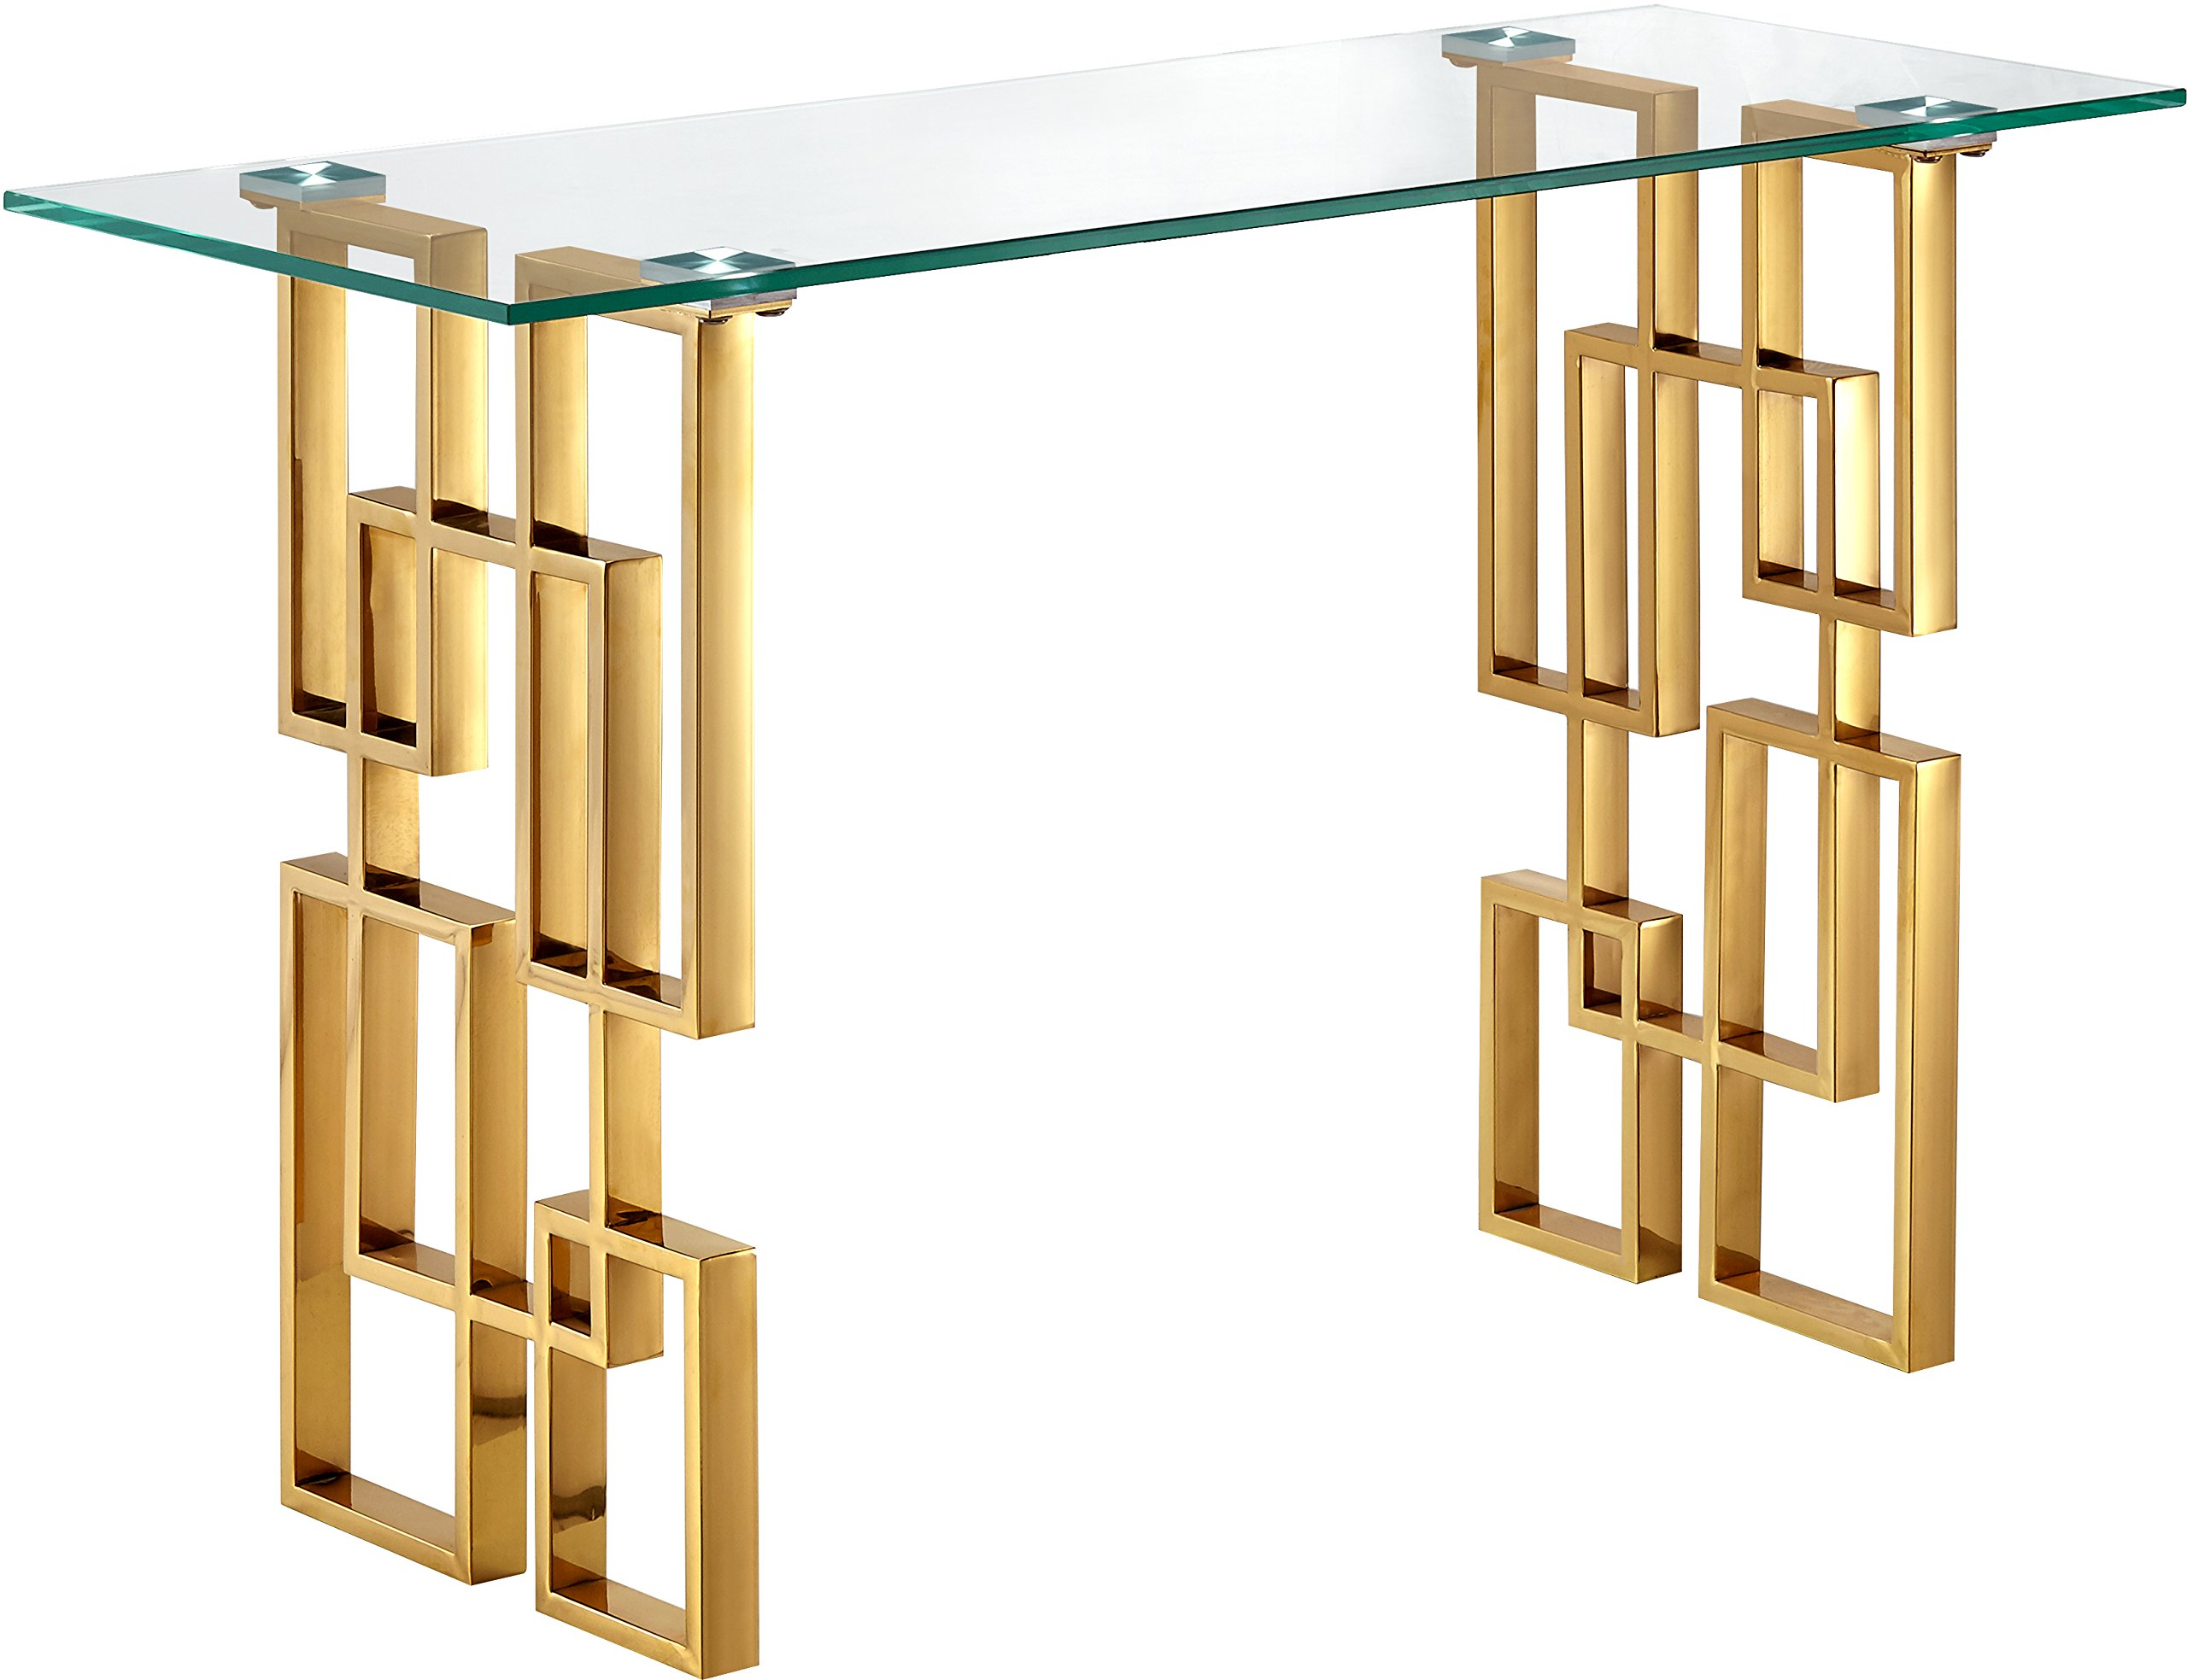 Meridian Furniture Pierre Collection Modern | Contemporary Square Glass Console Table with Stainless Steel Base and Rich Gold Finish, 32'' W x 28'' D x 27.5'' H, by Meridian Furniture